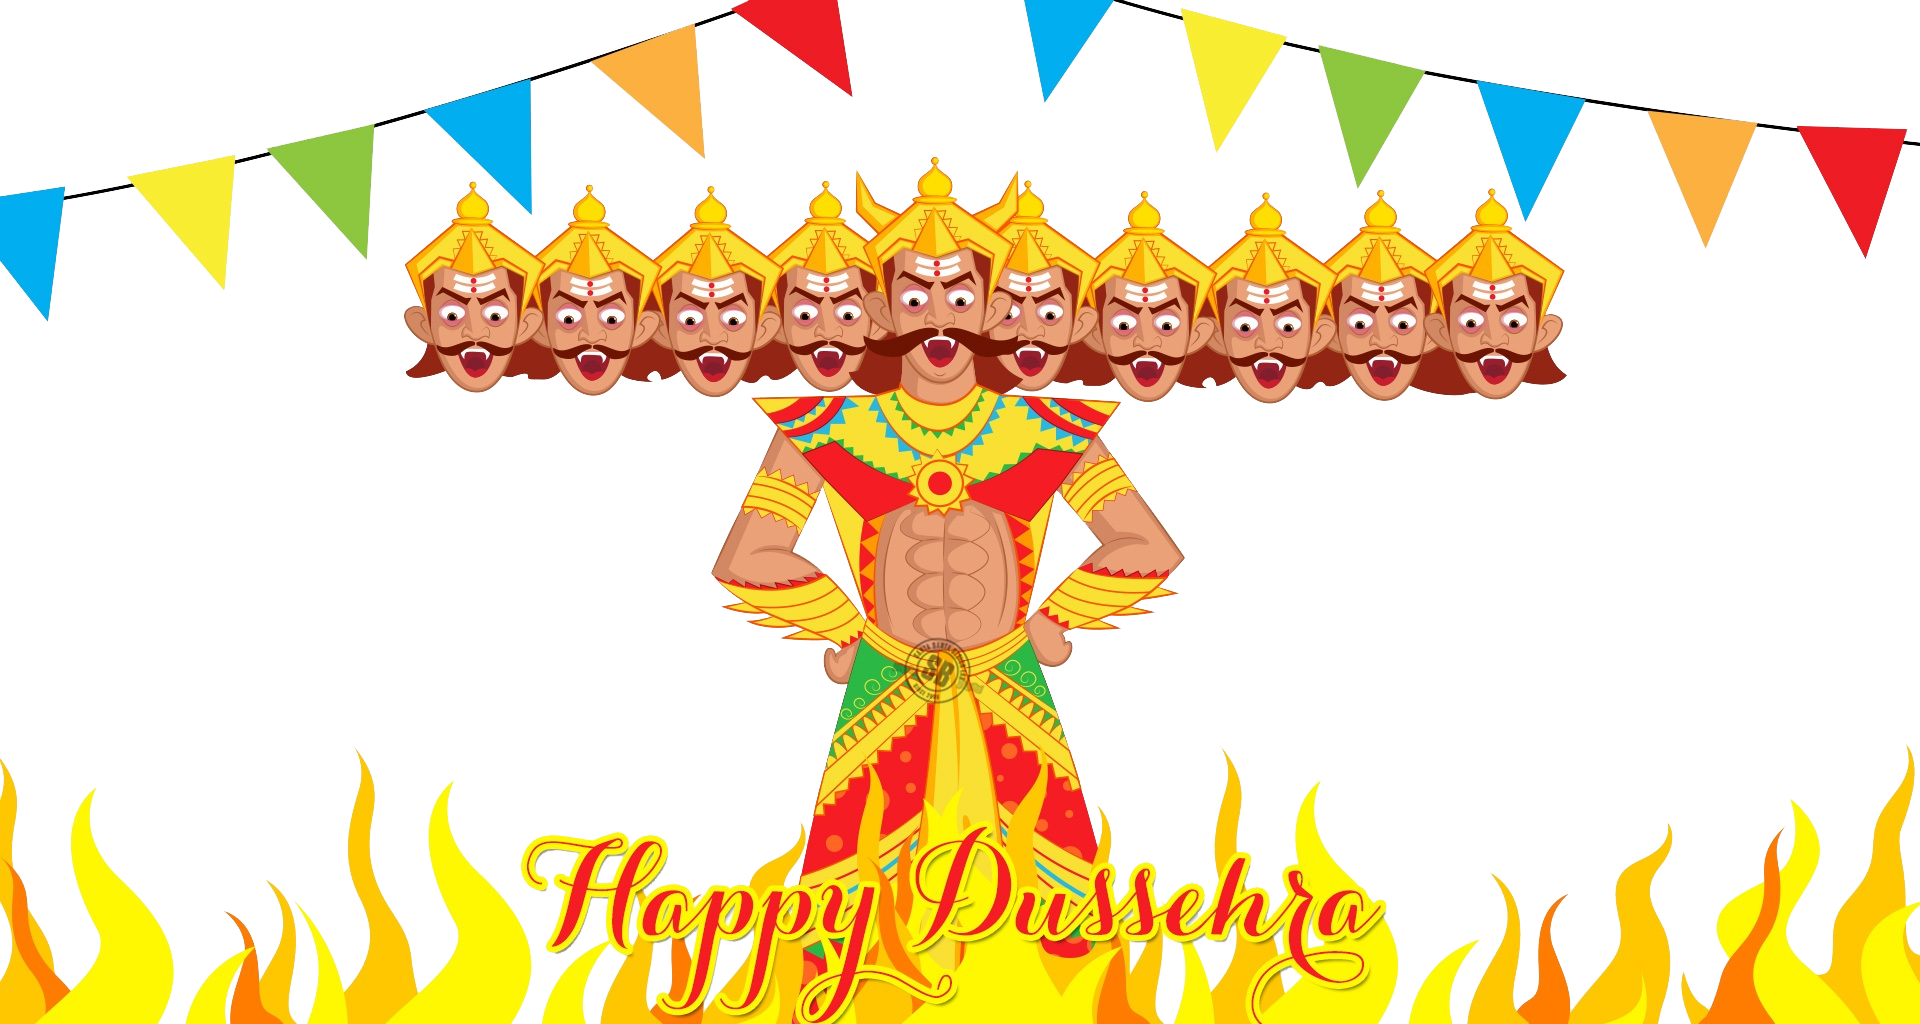 Happy Dussehra 2018 Wishes And Messages In English Whatsapp Status